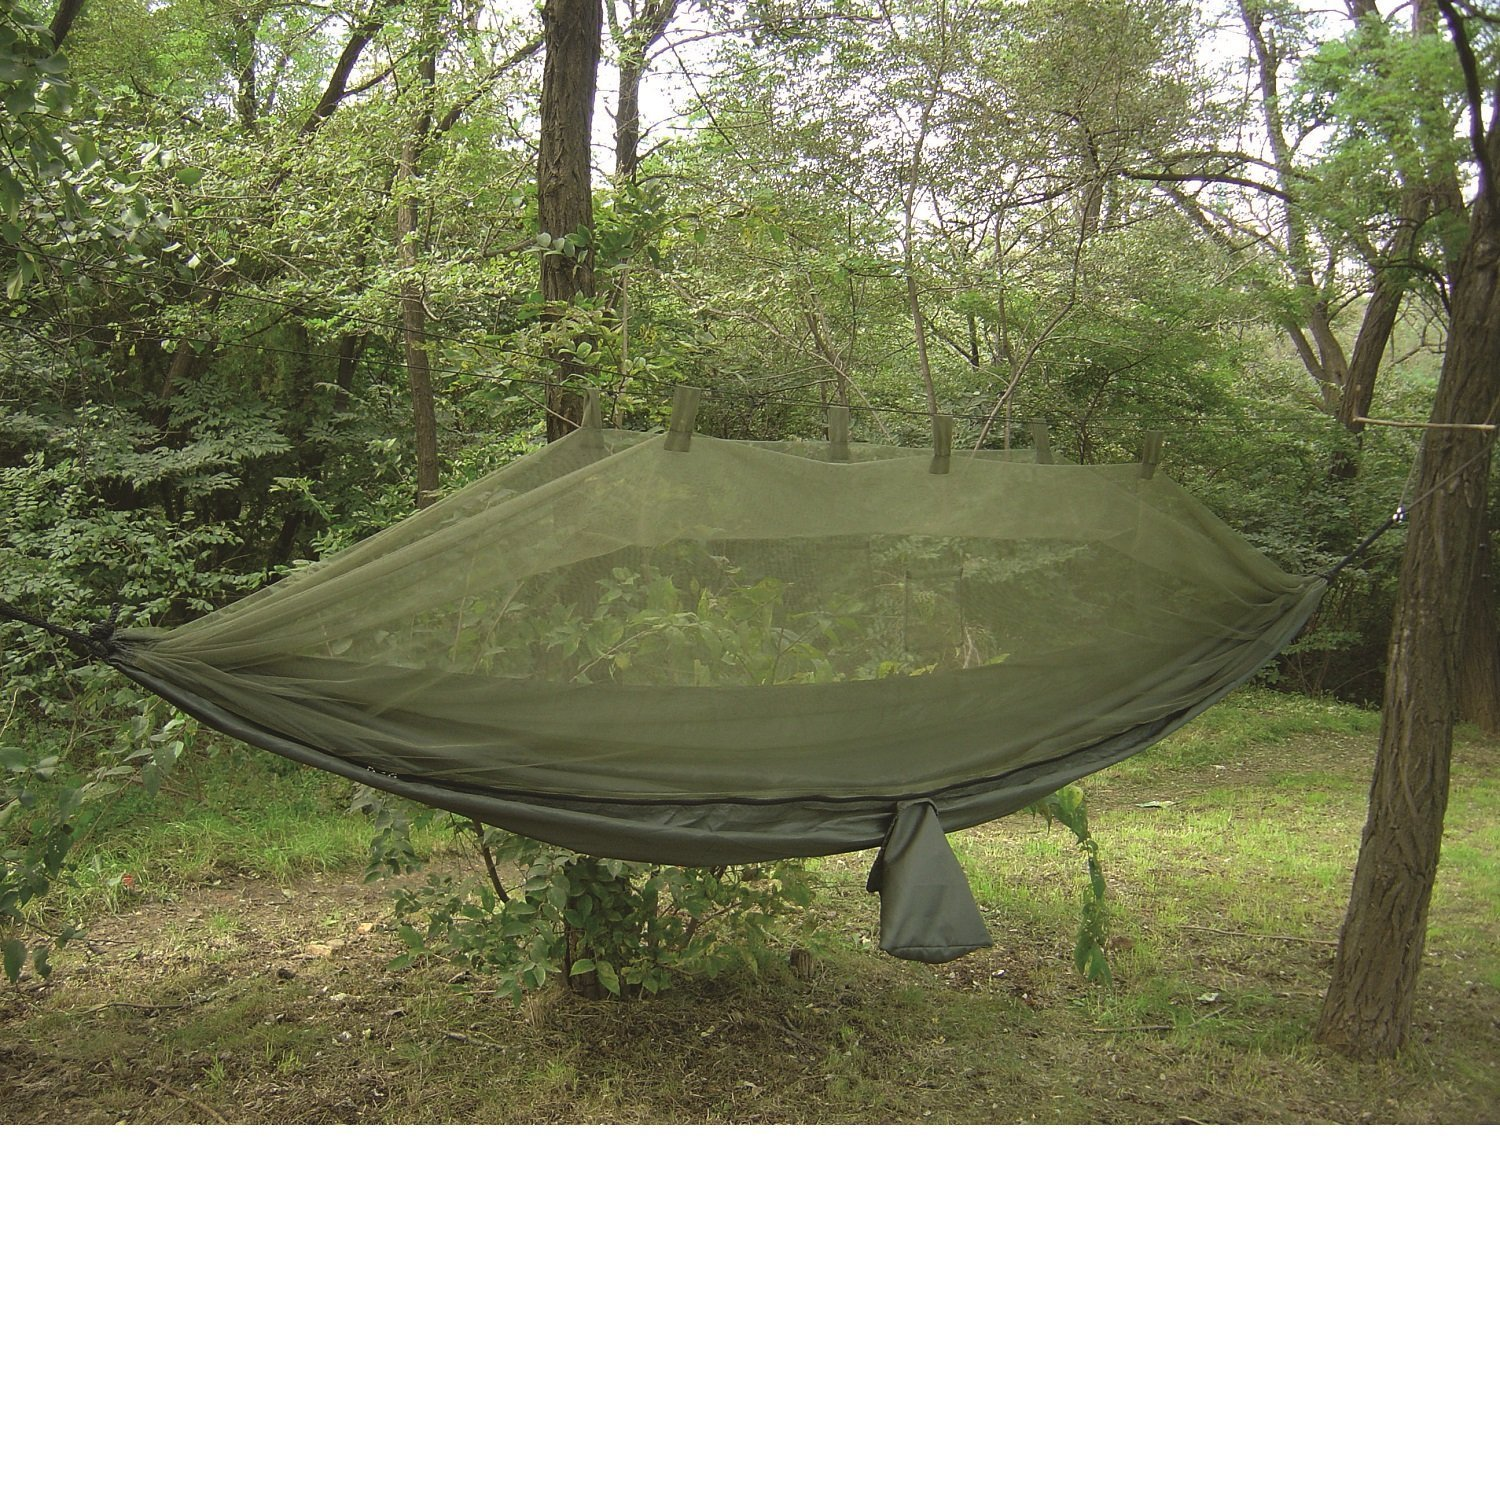 4002529 Snugpak Jungle Hammock with Mosquito Net in Olive